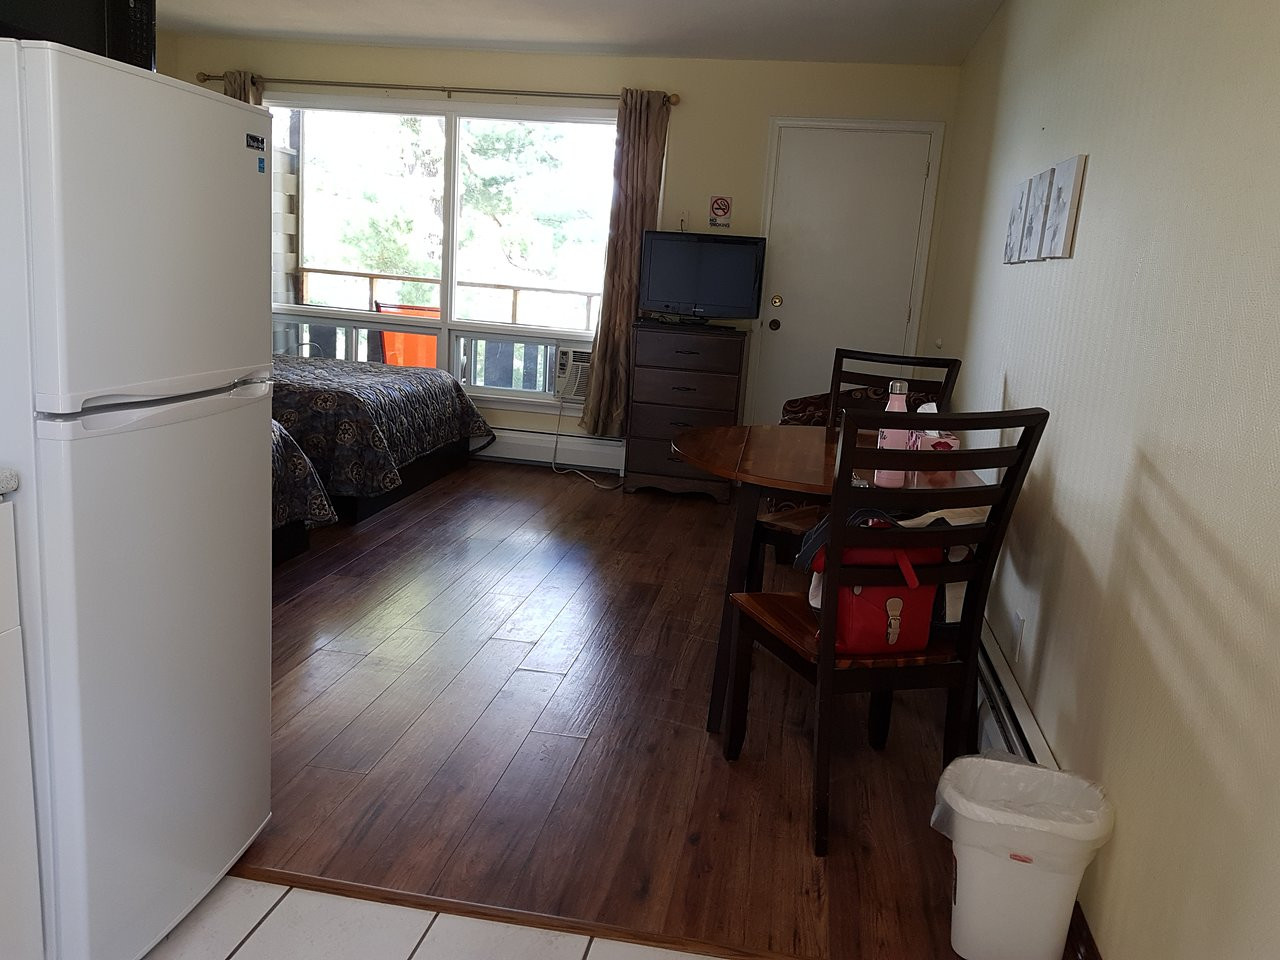 hardwood flooring hamilton ontario canada of pinedale inn muskoka district gravenhurst motel reviews photos pertaining to pinedale inn muskoka district gravenhurst motel reviews photos rate comparison tripadvisor